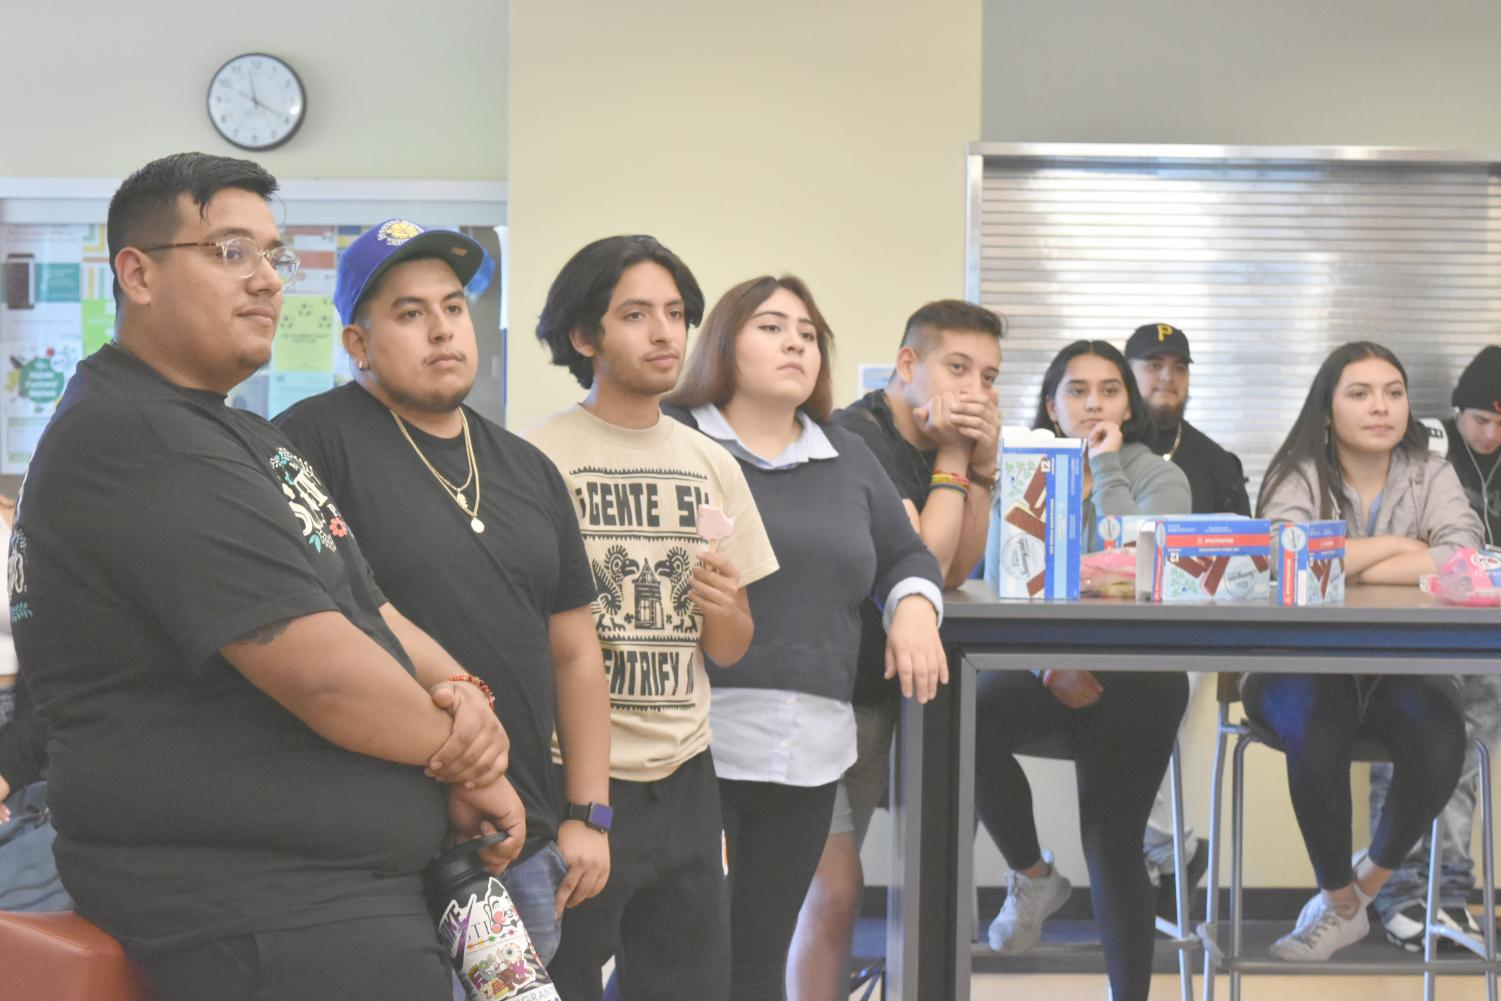 Students gathered in the Student Lounge to share ice cream sandwiches and Mexican paletas during the Bienvenida Ice Cream Social event